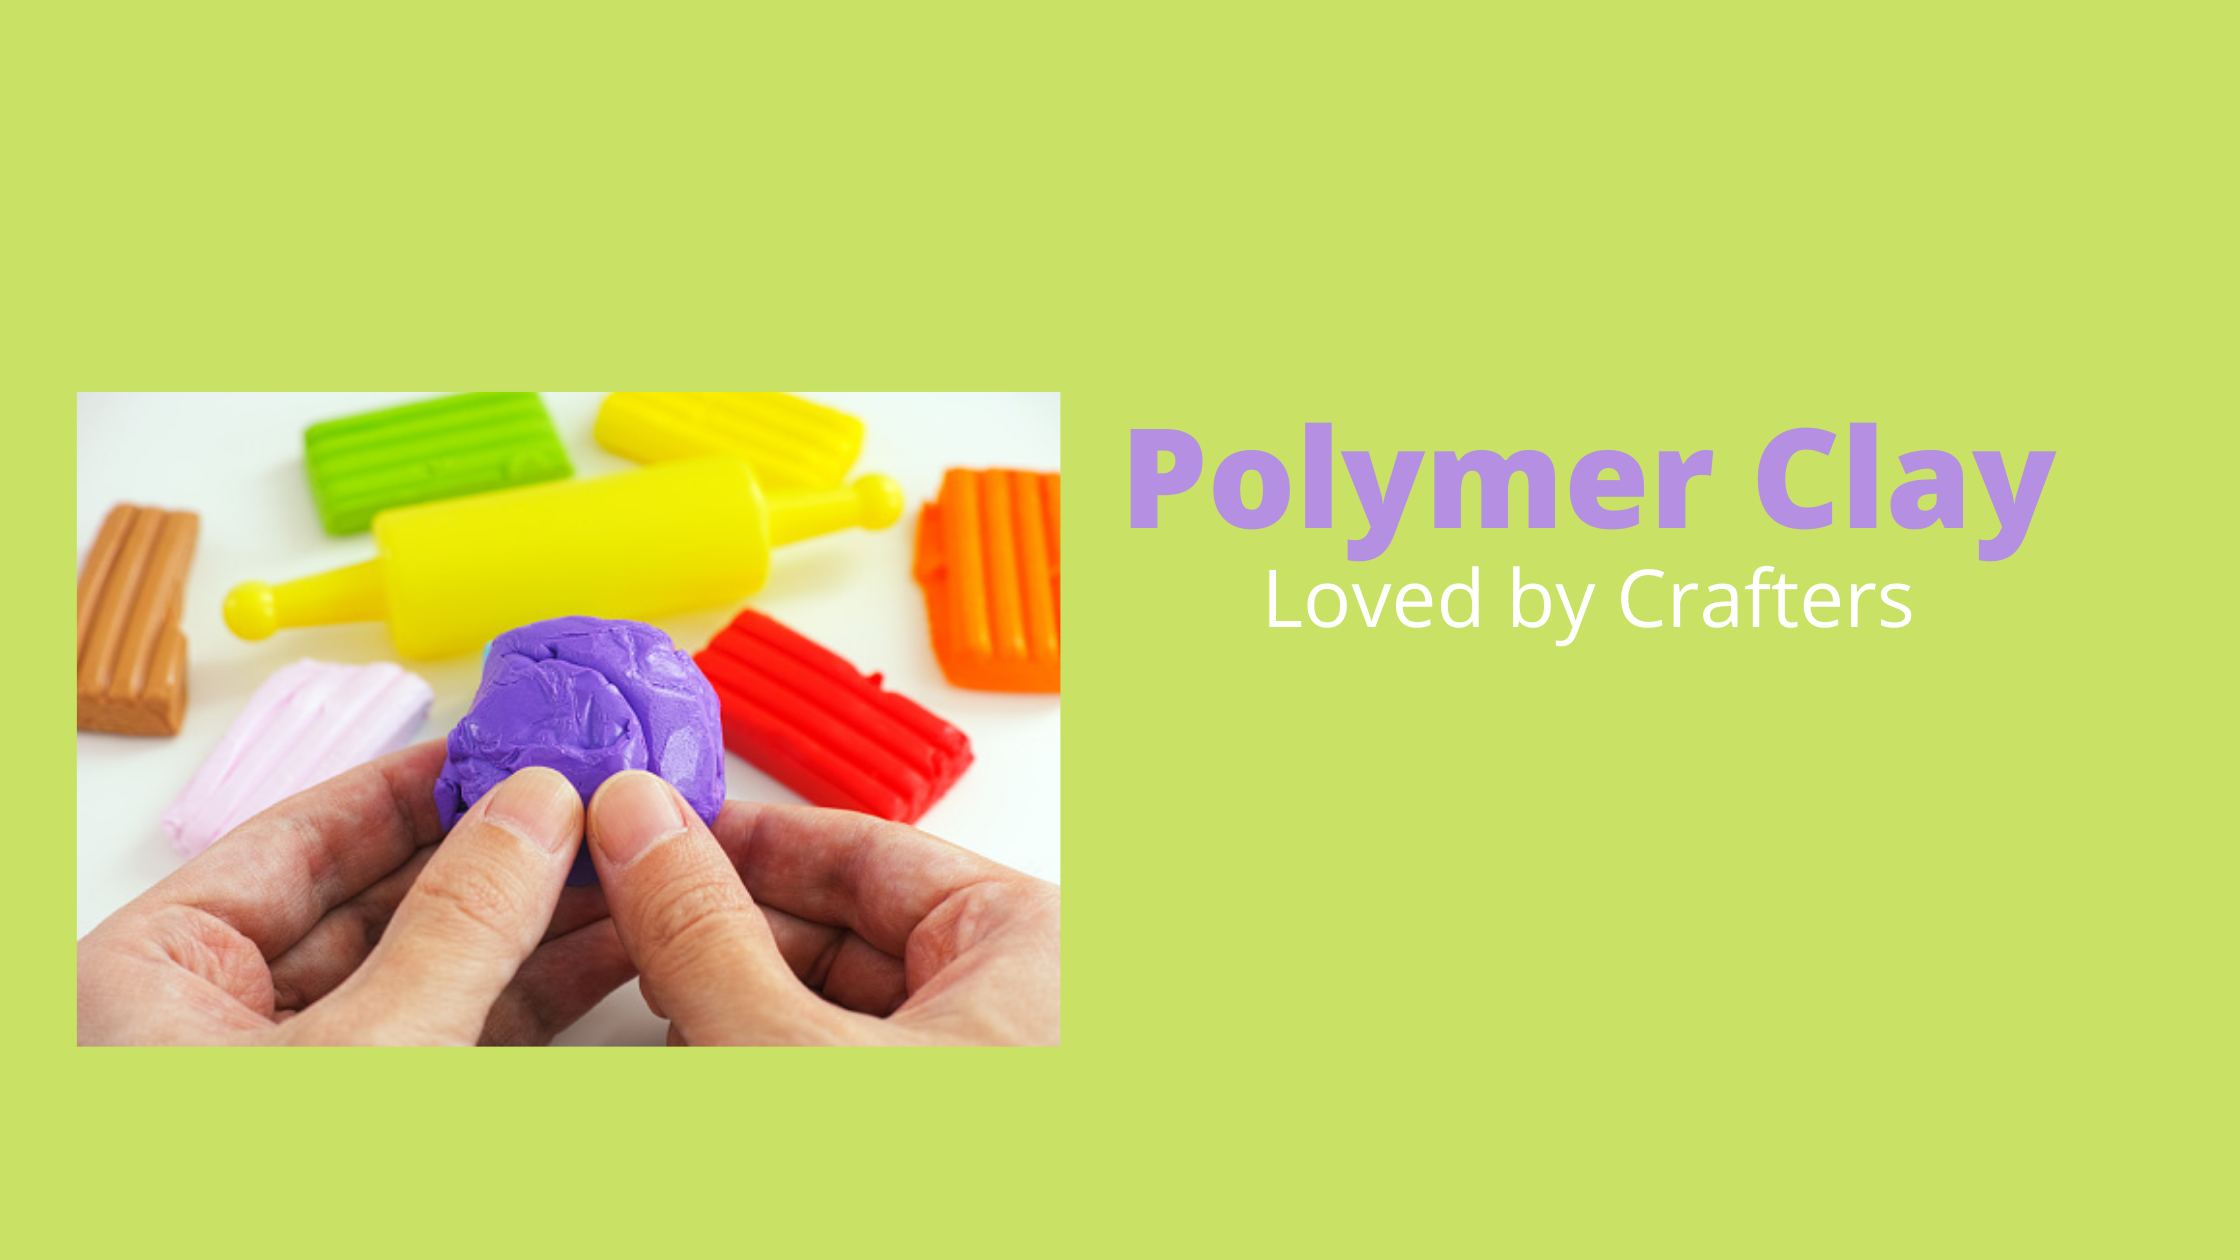 What is a Polymer Clay?